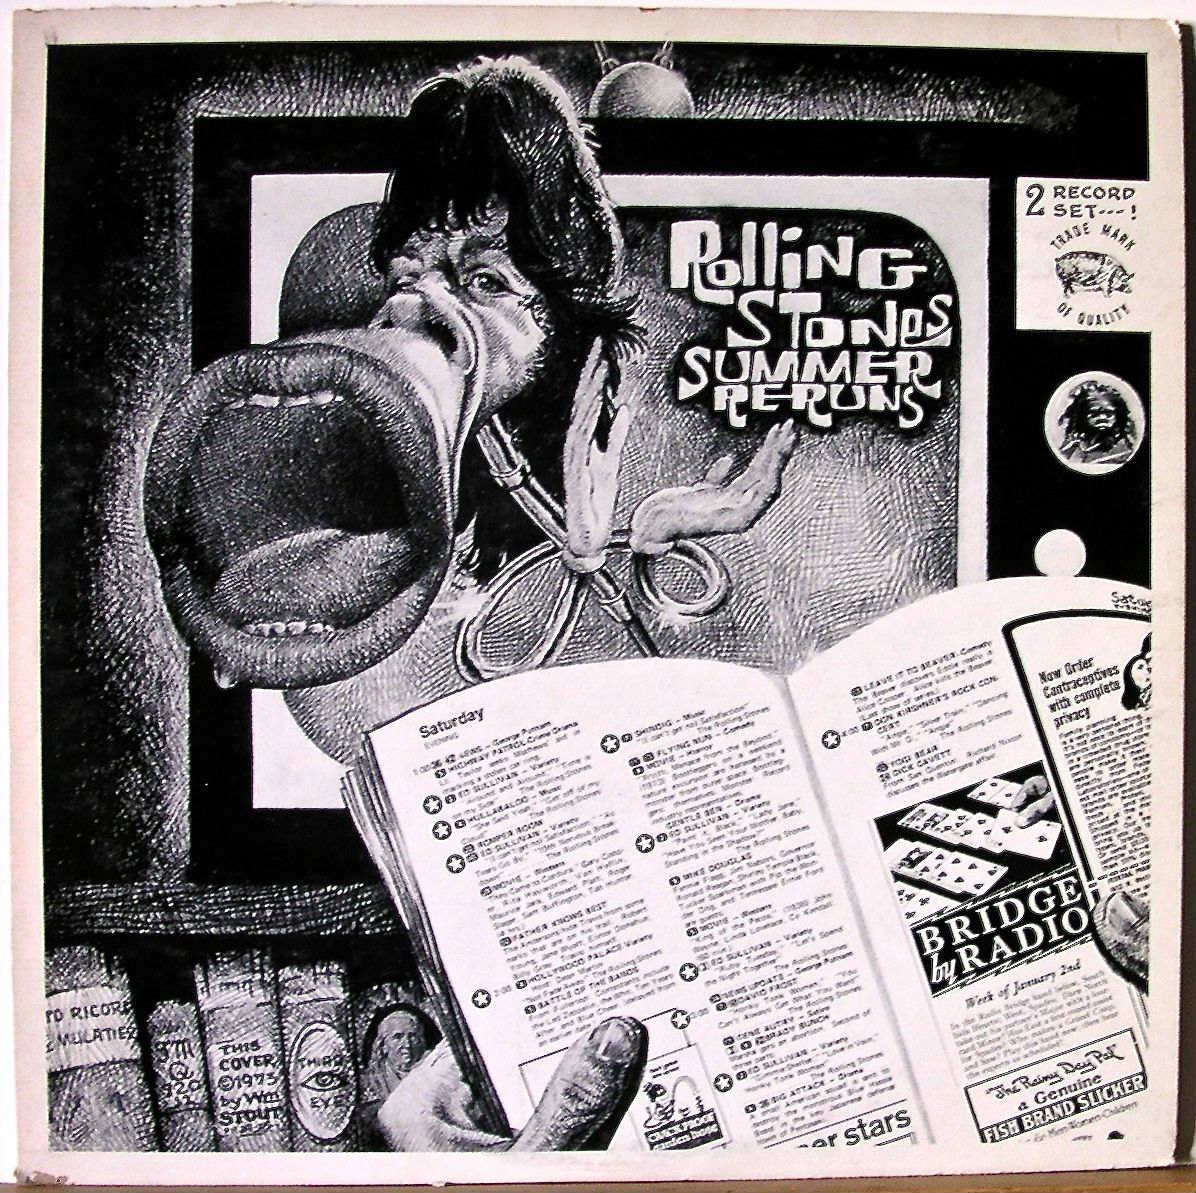 william-stout-album-rolling-stones